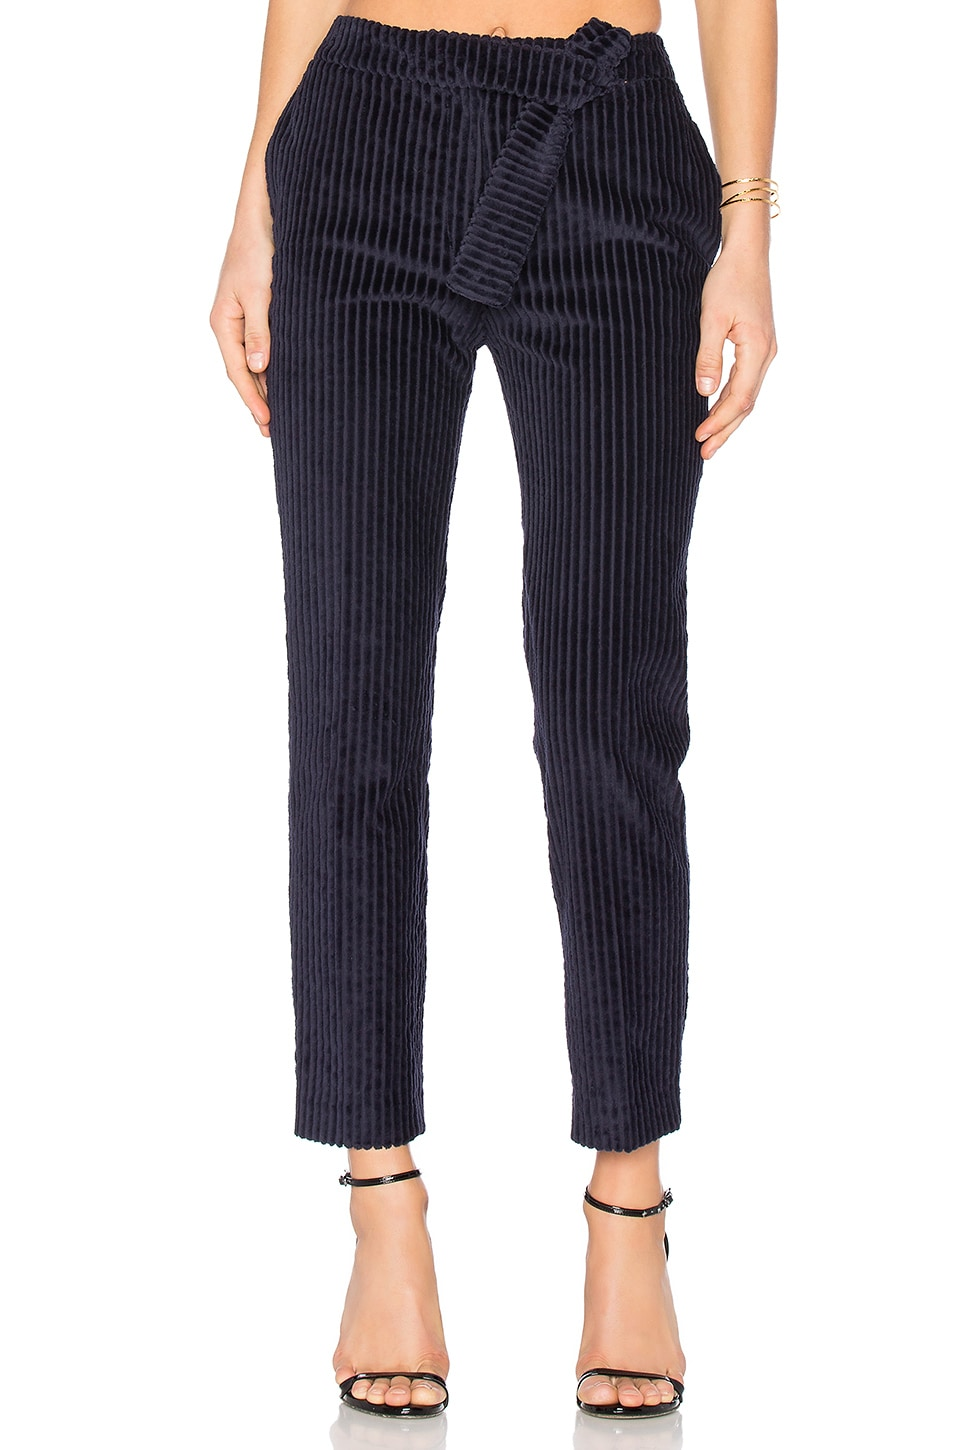 Corduroy Pant by cacharel